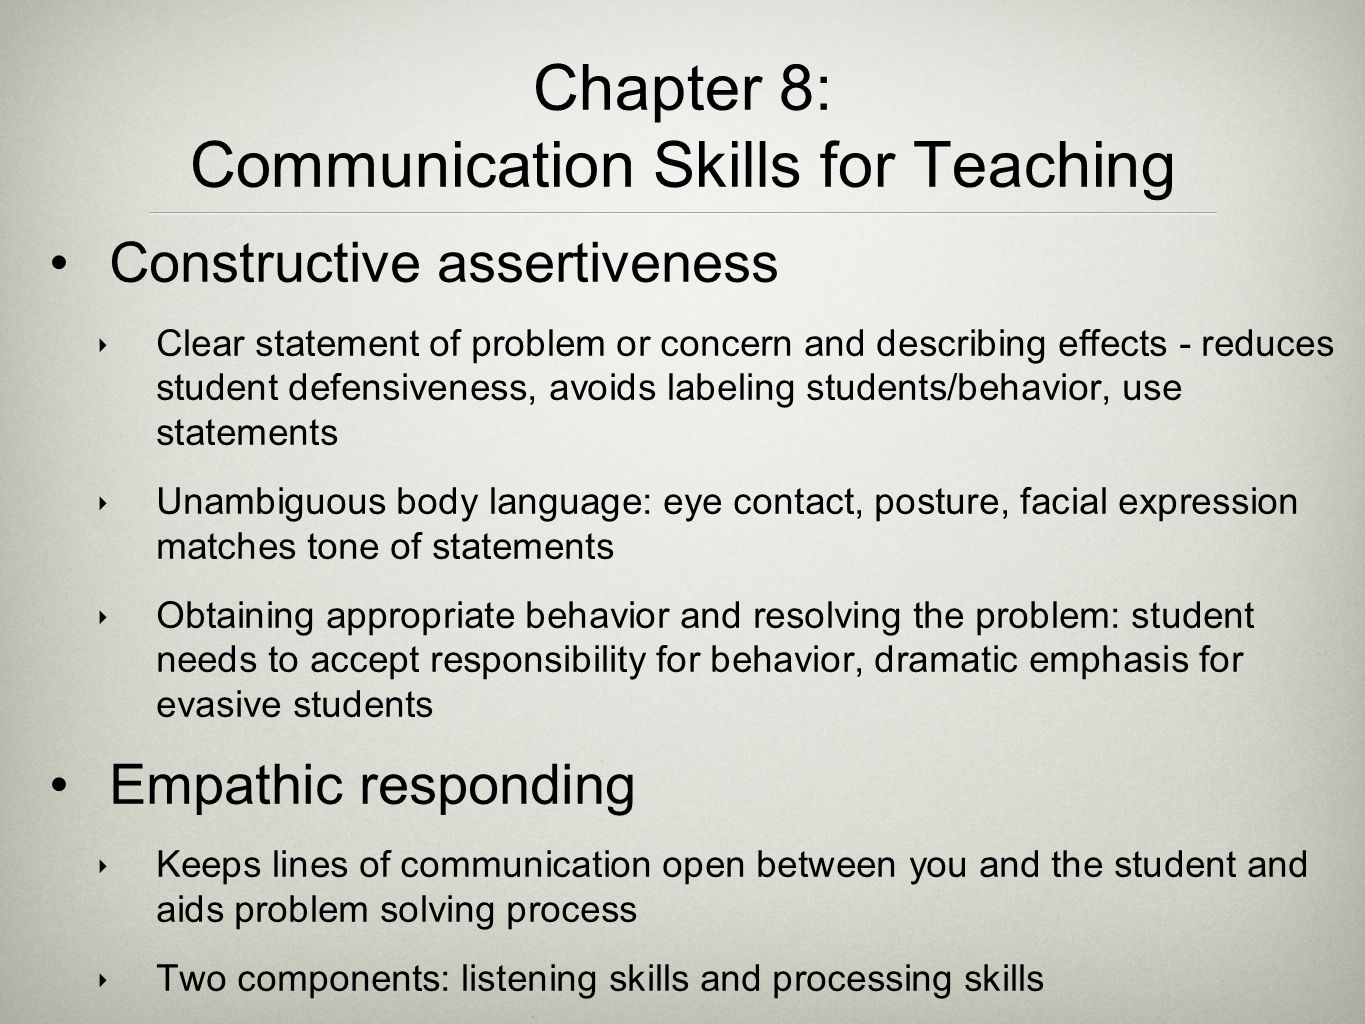 Chapter 8: Communication Skills for Teaching